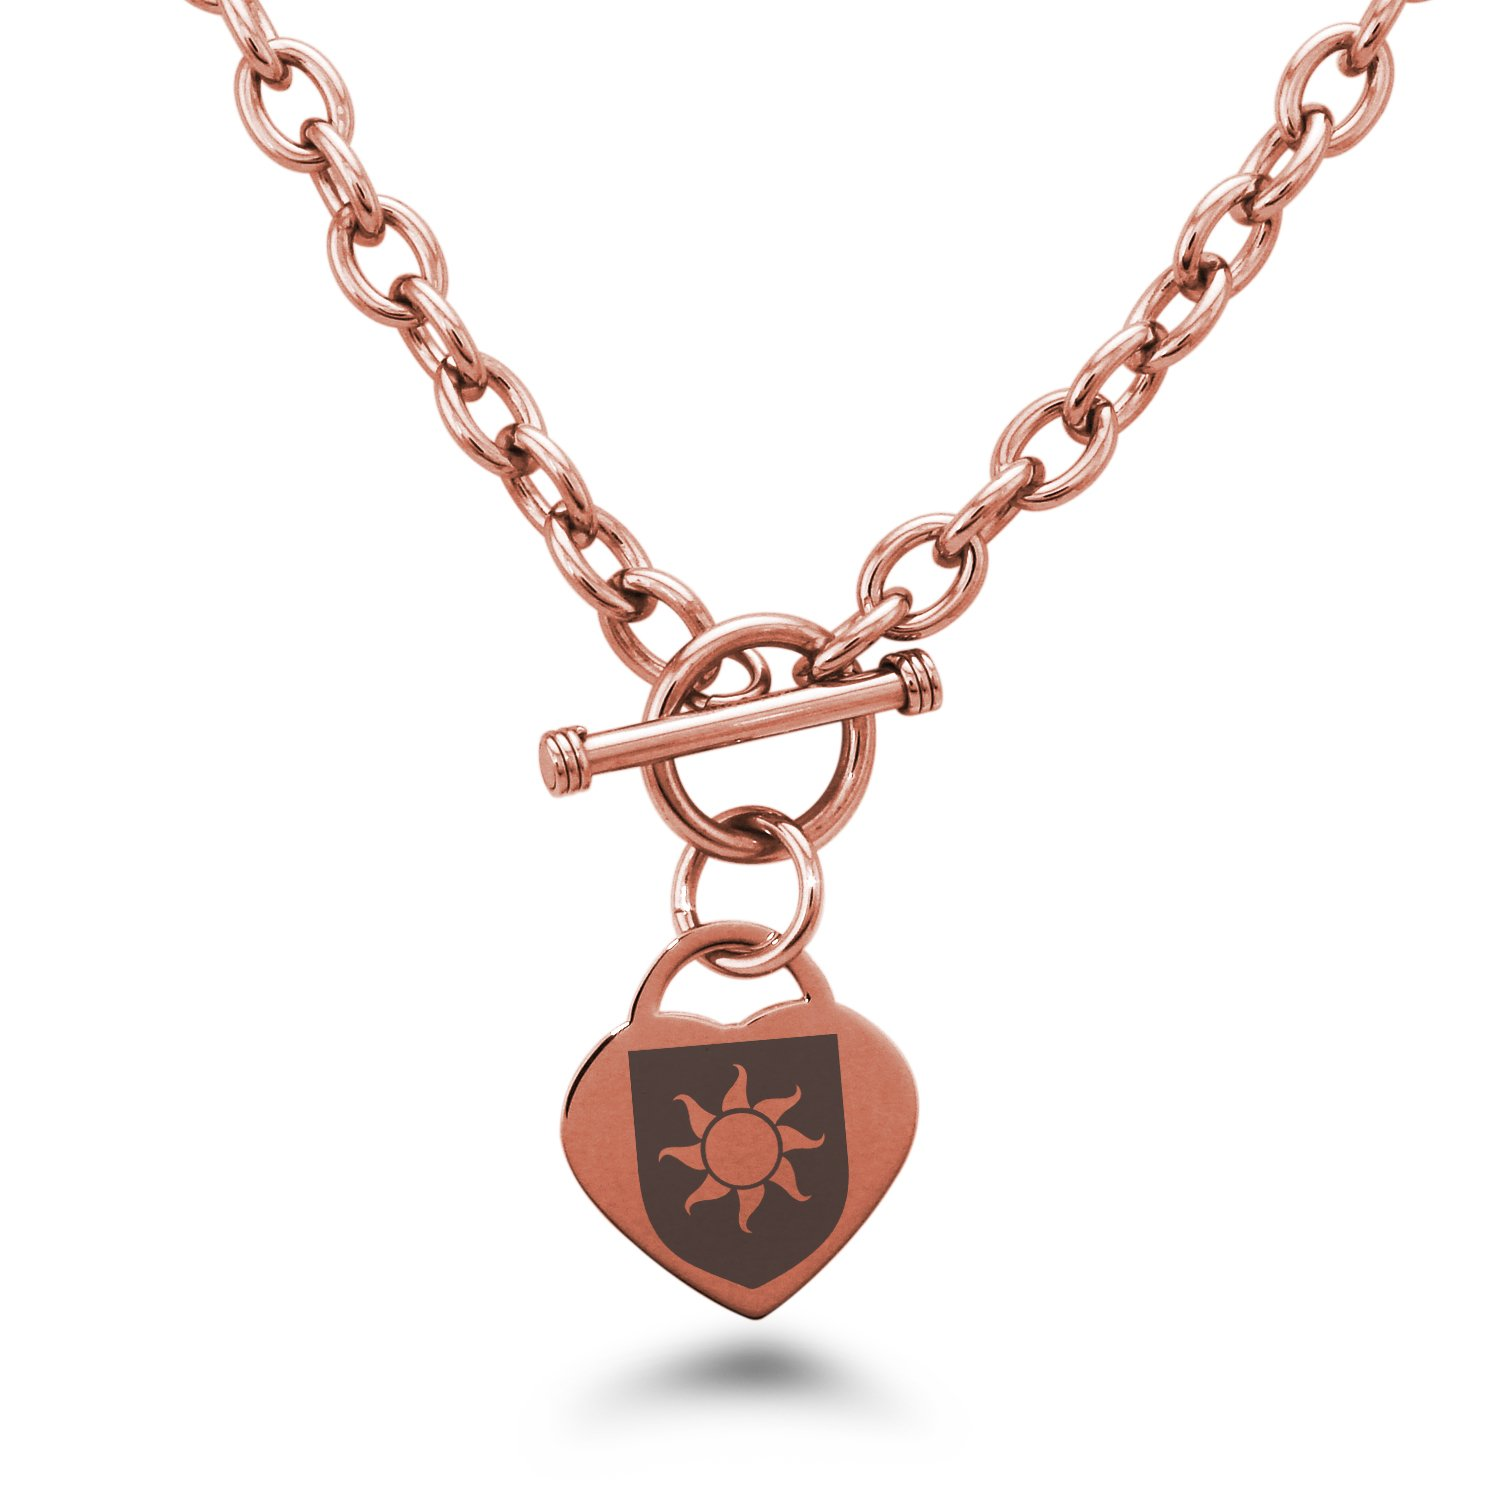 Tioneer Rose Gold Plated Stainless Steel Sun Splendor Coat of Arms Shield Symbols Heart Charm, Necklace Only